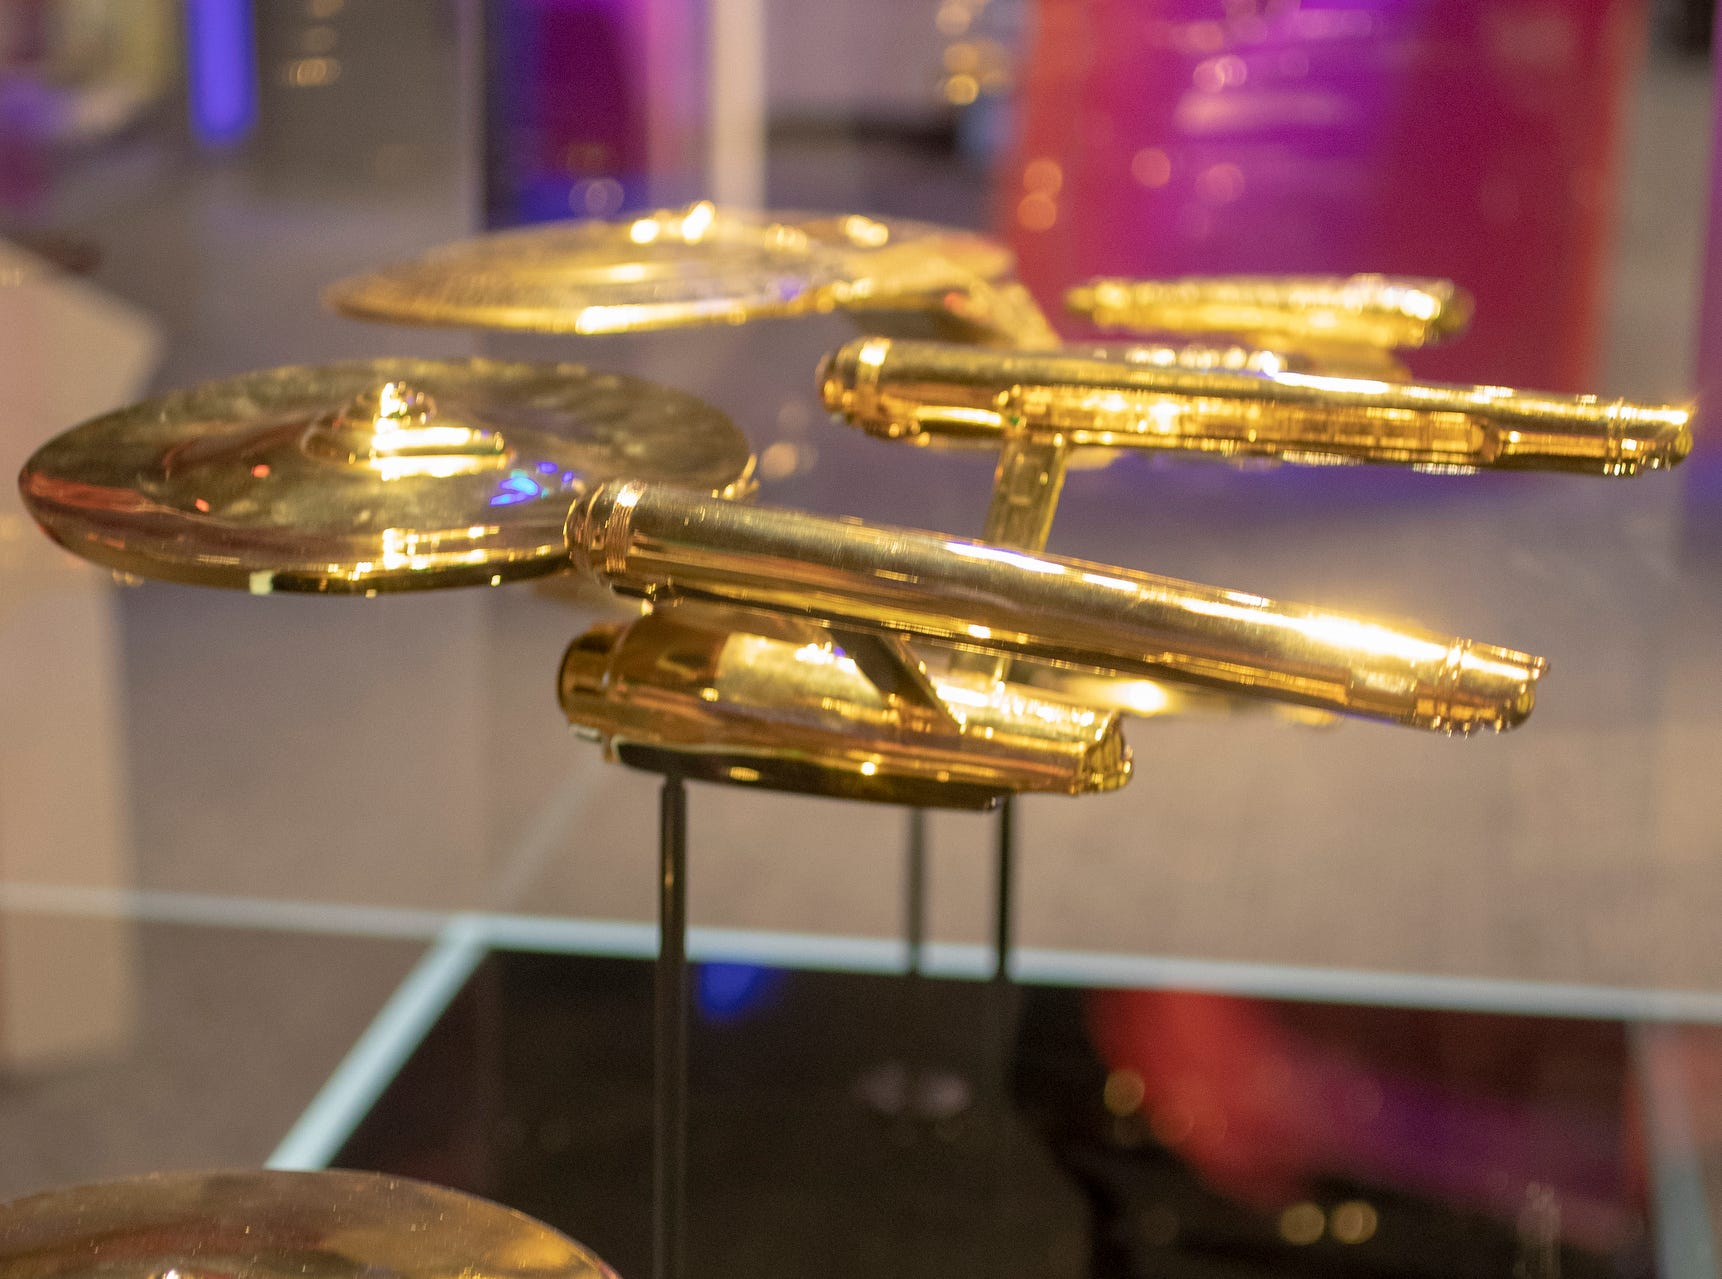 """Golden starship models are seen at The Children's Museum of Indianapolis, Wednesday, Jan. 23, 2019. The """"Star Trek: Exploring New Worlds"""" exhibit is made up of set pieces, ship models and outfits used during various Star Trek shows and movies and is on display at the museum from Feb. 2 through April 7, 2019."""